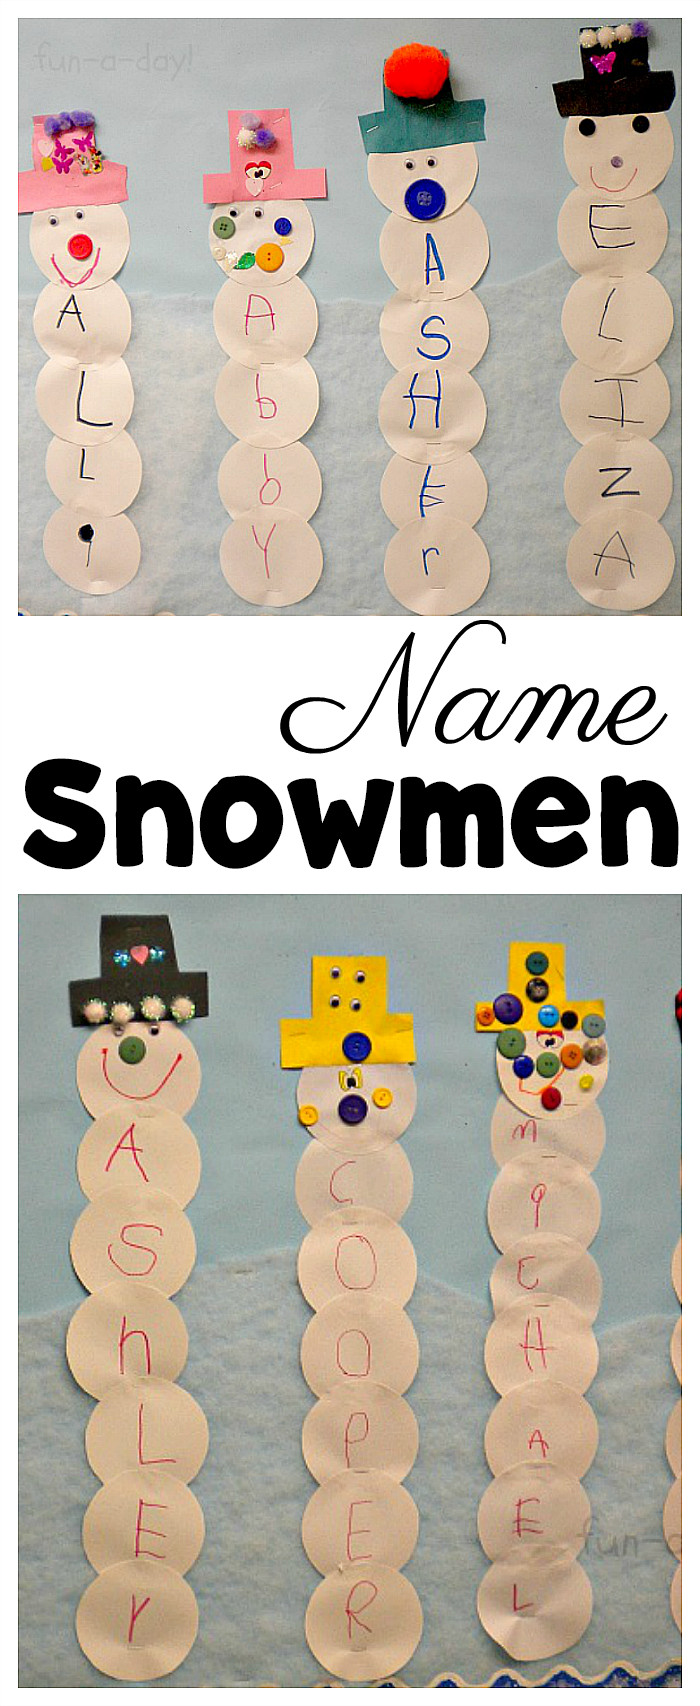 Best ideas about Crafts For Preschool Kids . Save or Pin Name Snowman Preschool Craft and Free Printable Now.